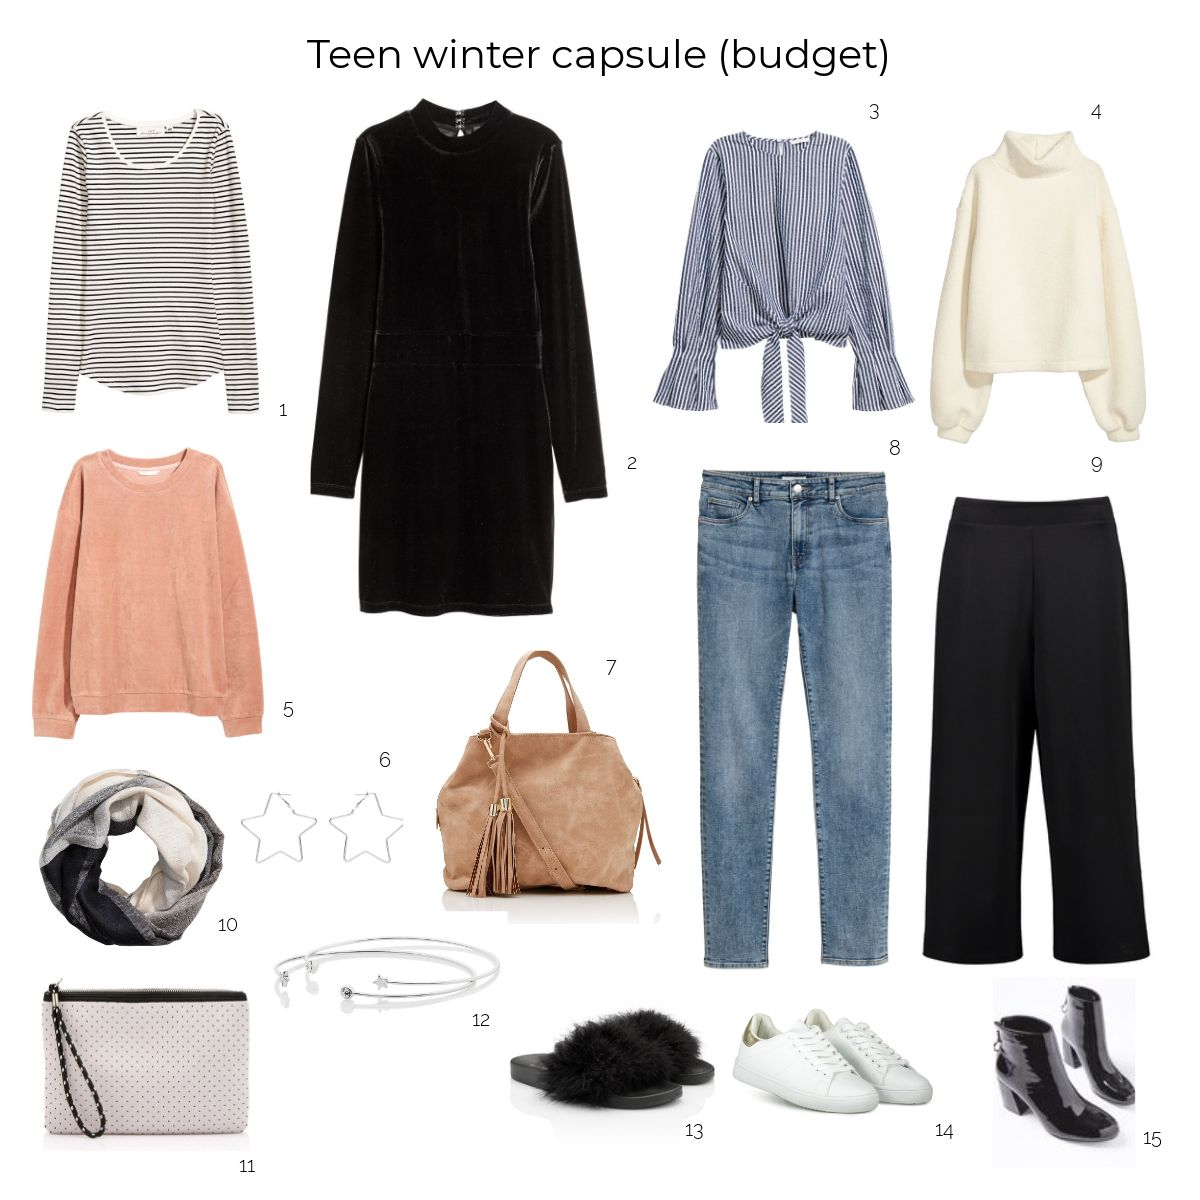 How to create a teenager winter capsule wardrobe on a budget